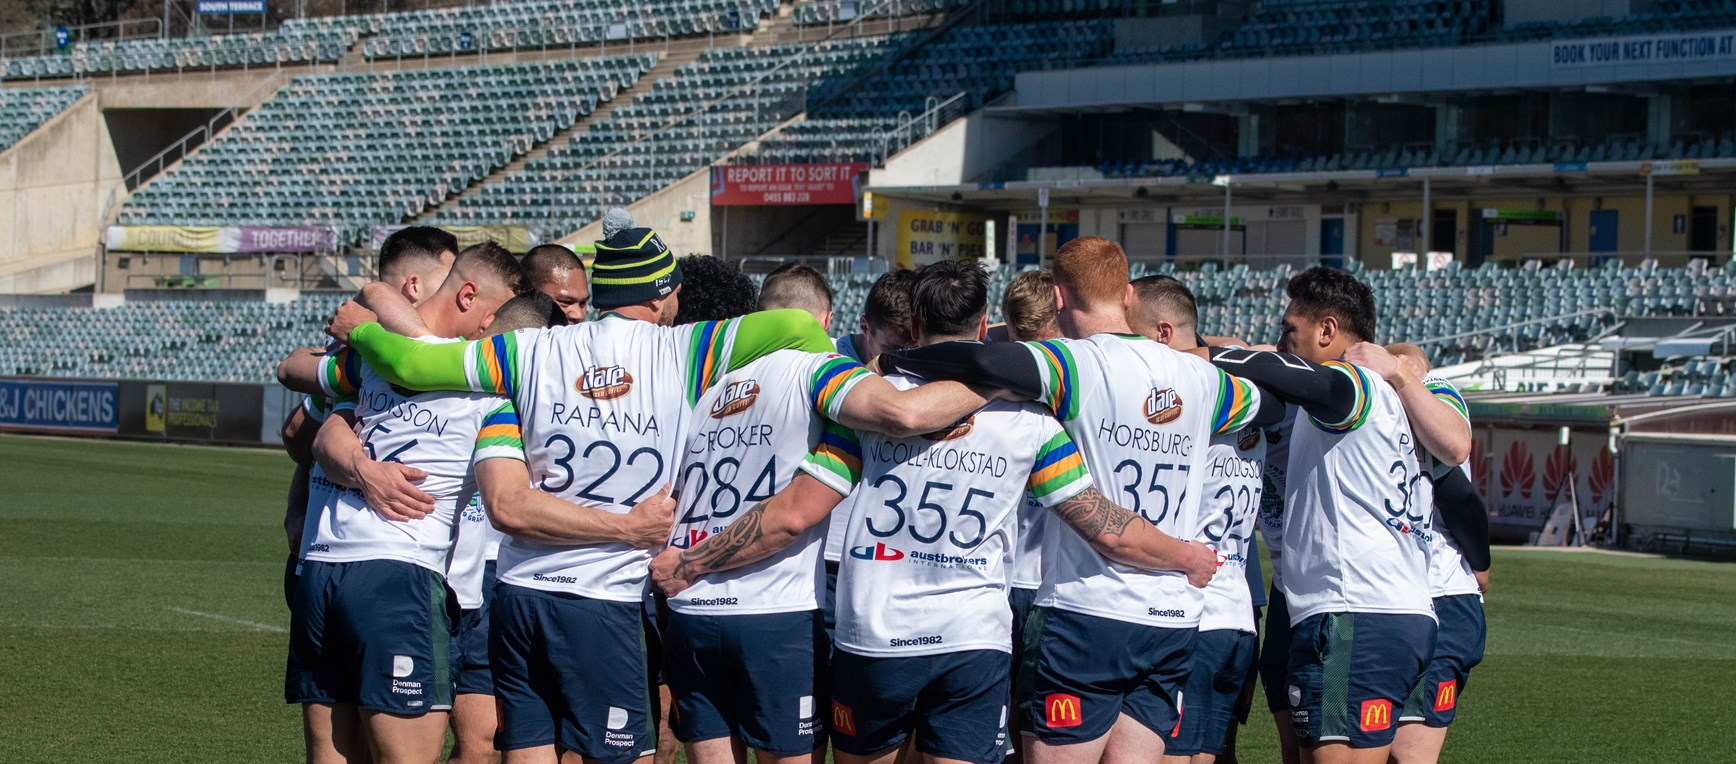 Gallery: Raiders train ahead of Sea Eagles showdown